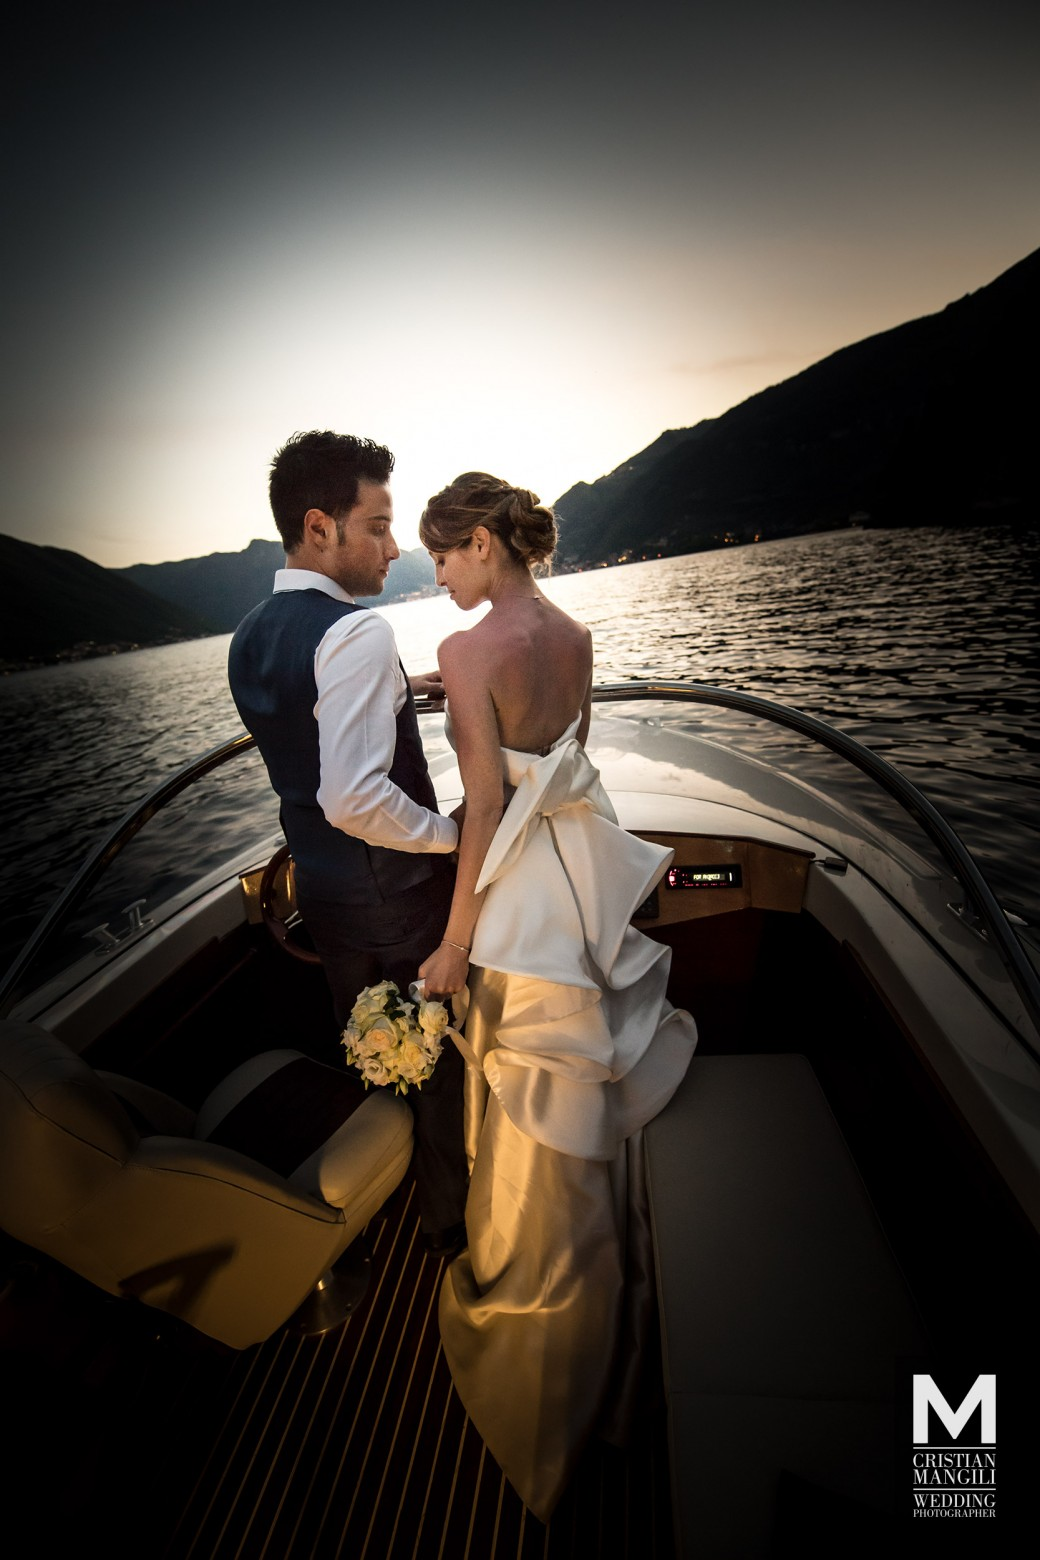 romantic-wedding-in-italy-como-lake